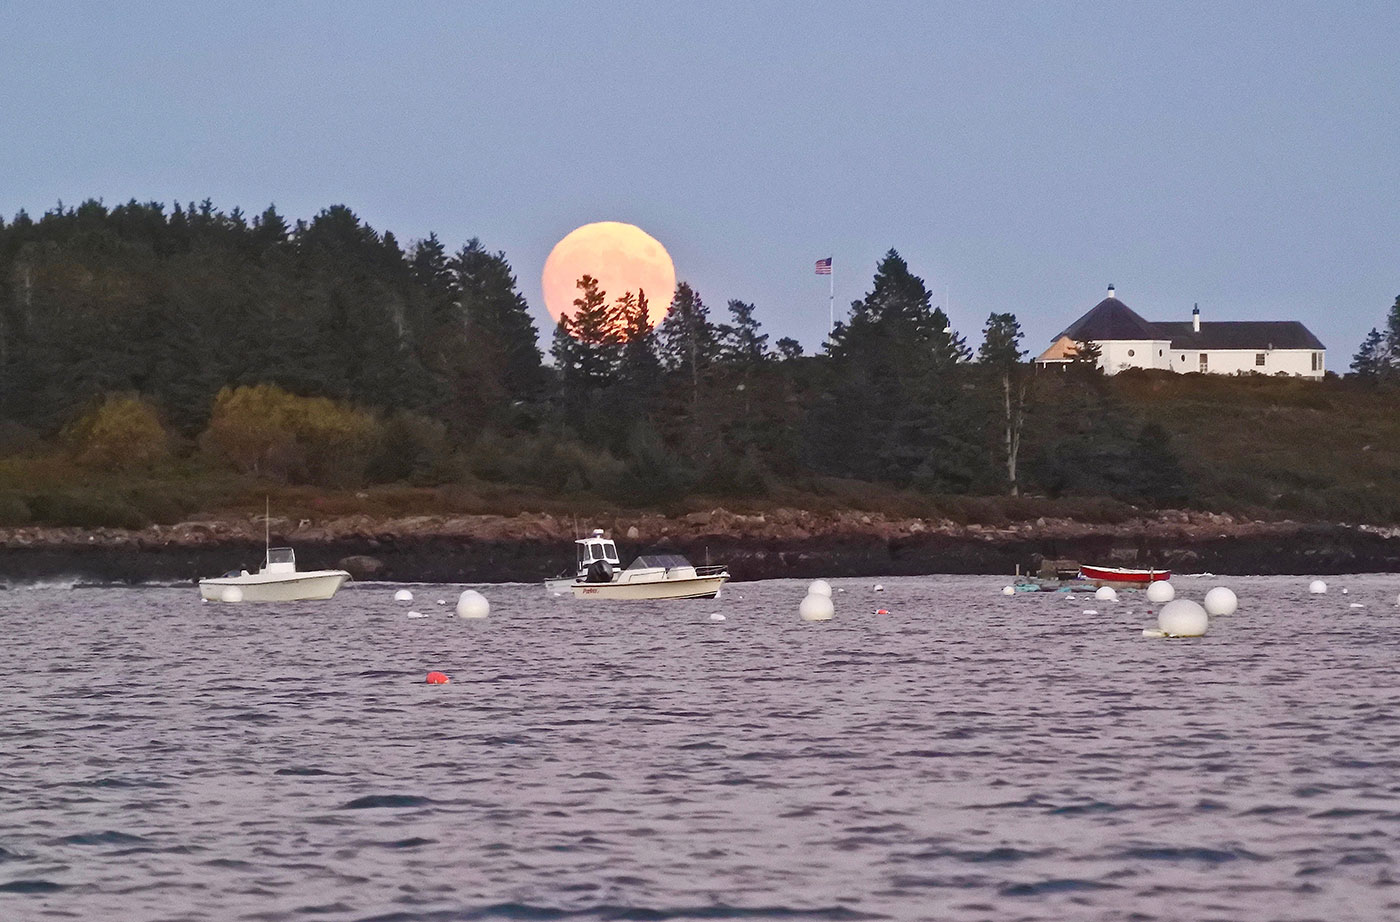 harvest moon over Maine coast